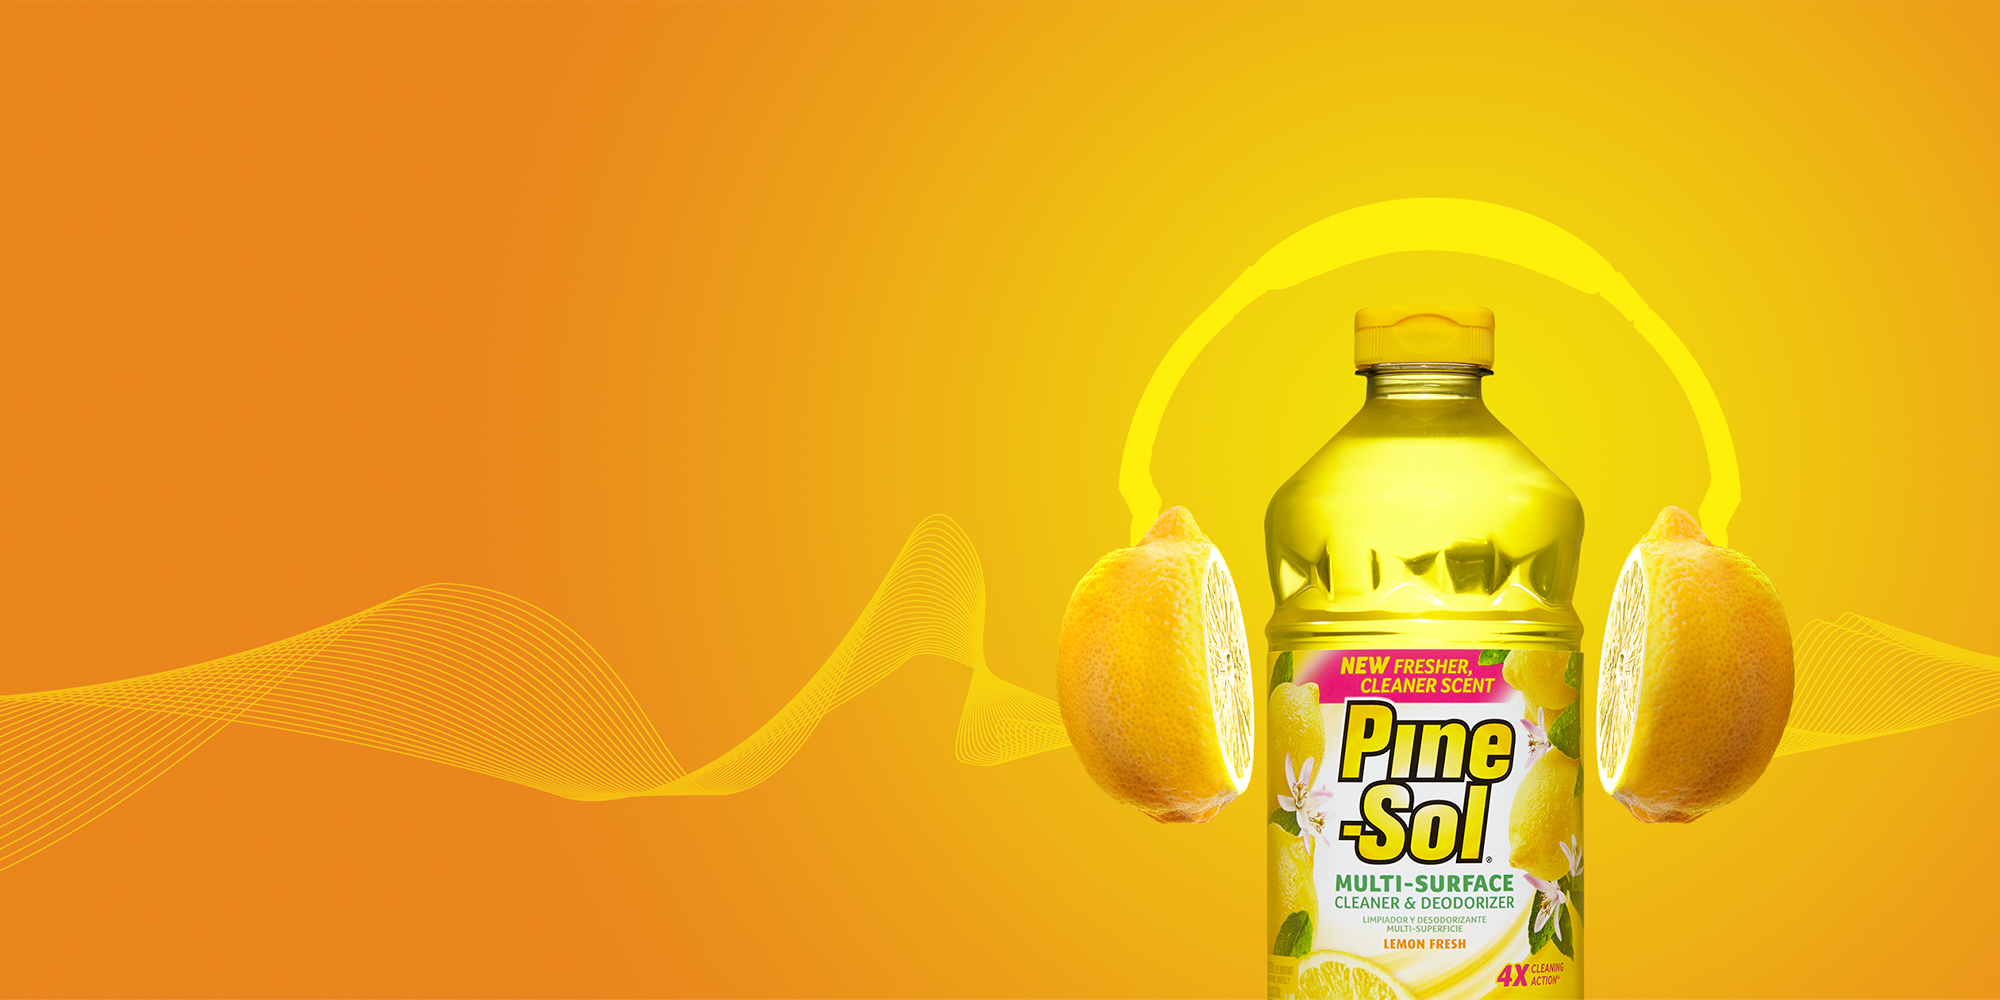 The #SoundOfSmell - Pine-Sol